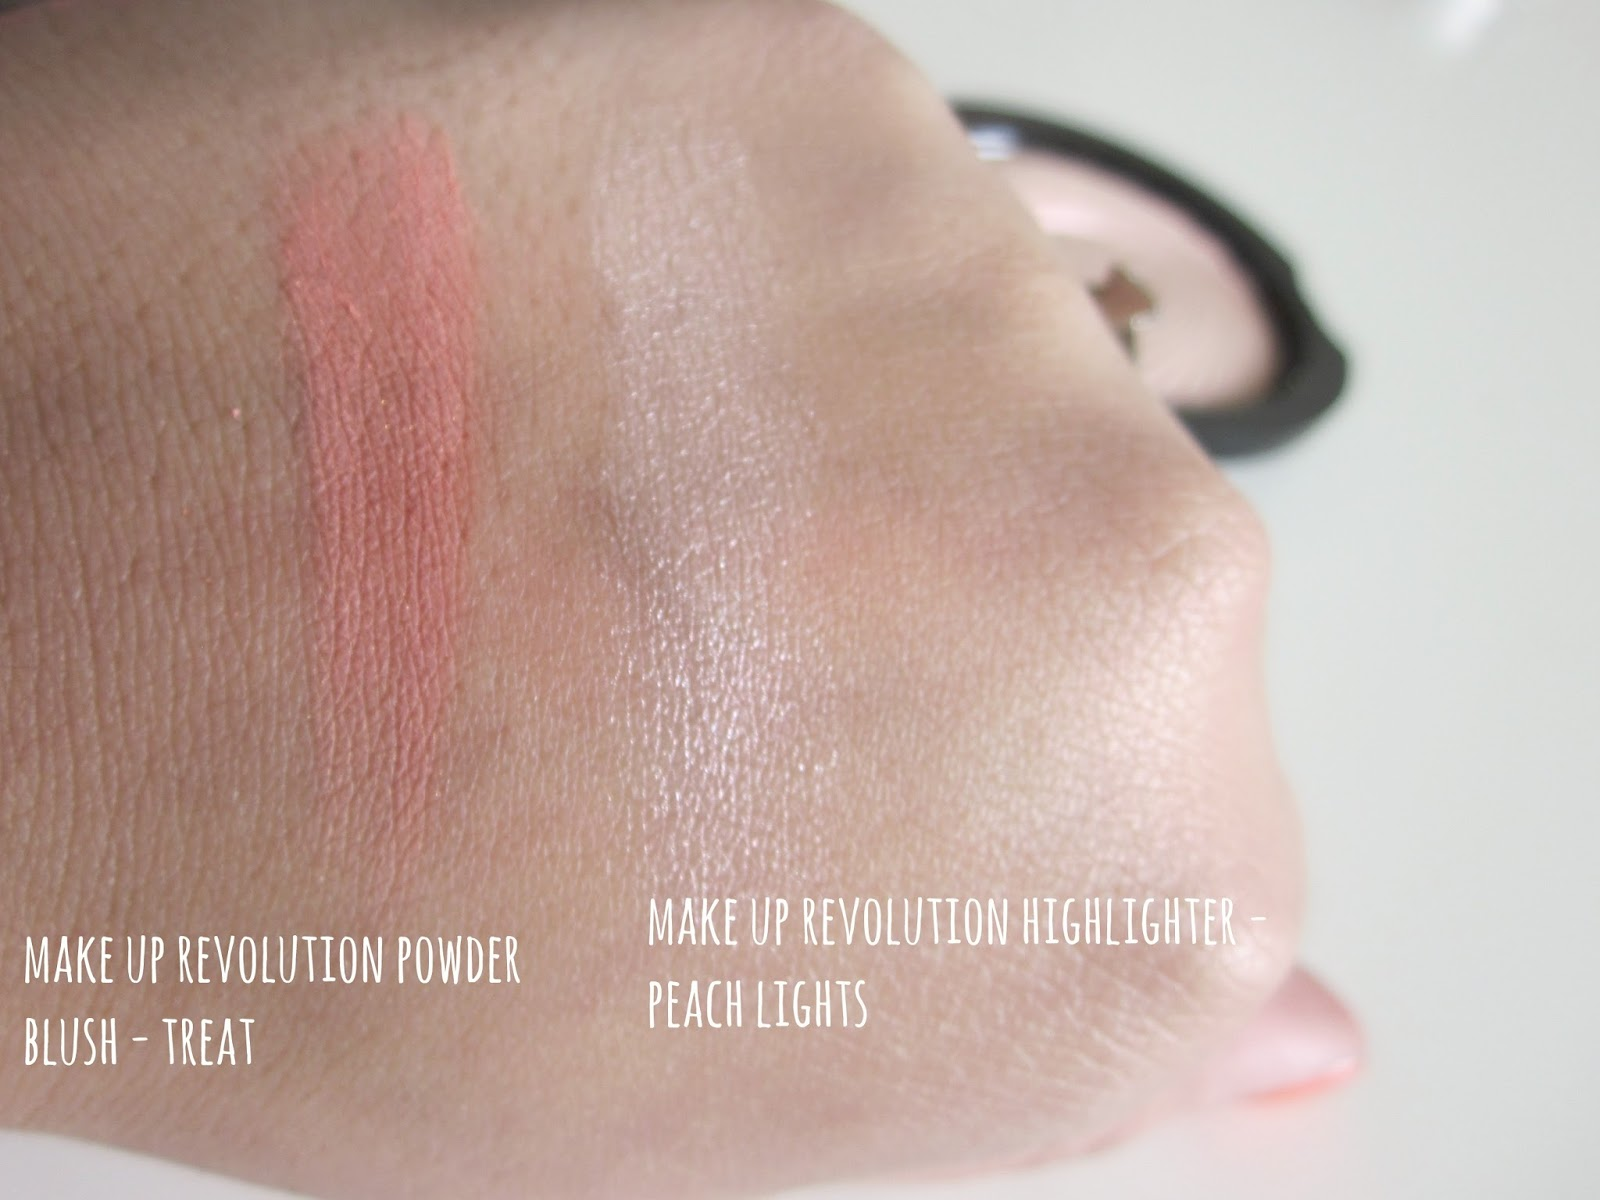 Make Up Revolution Photo Vivid Highlighter Peach Lights Blusher Treat Swatches